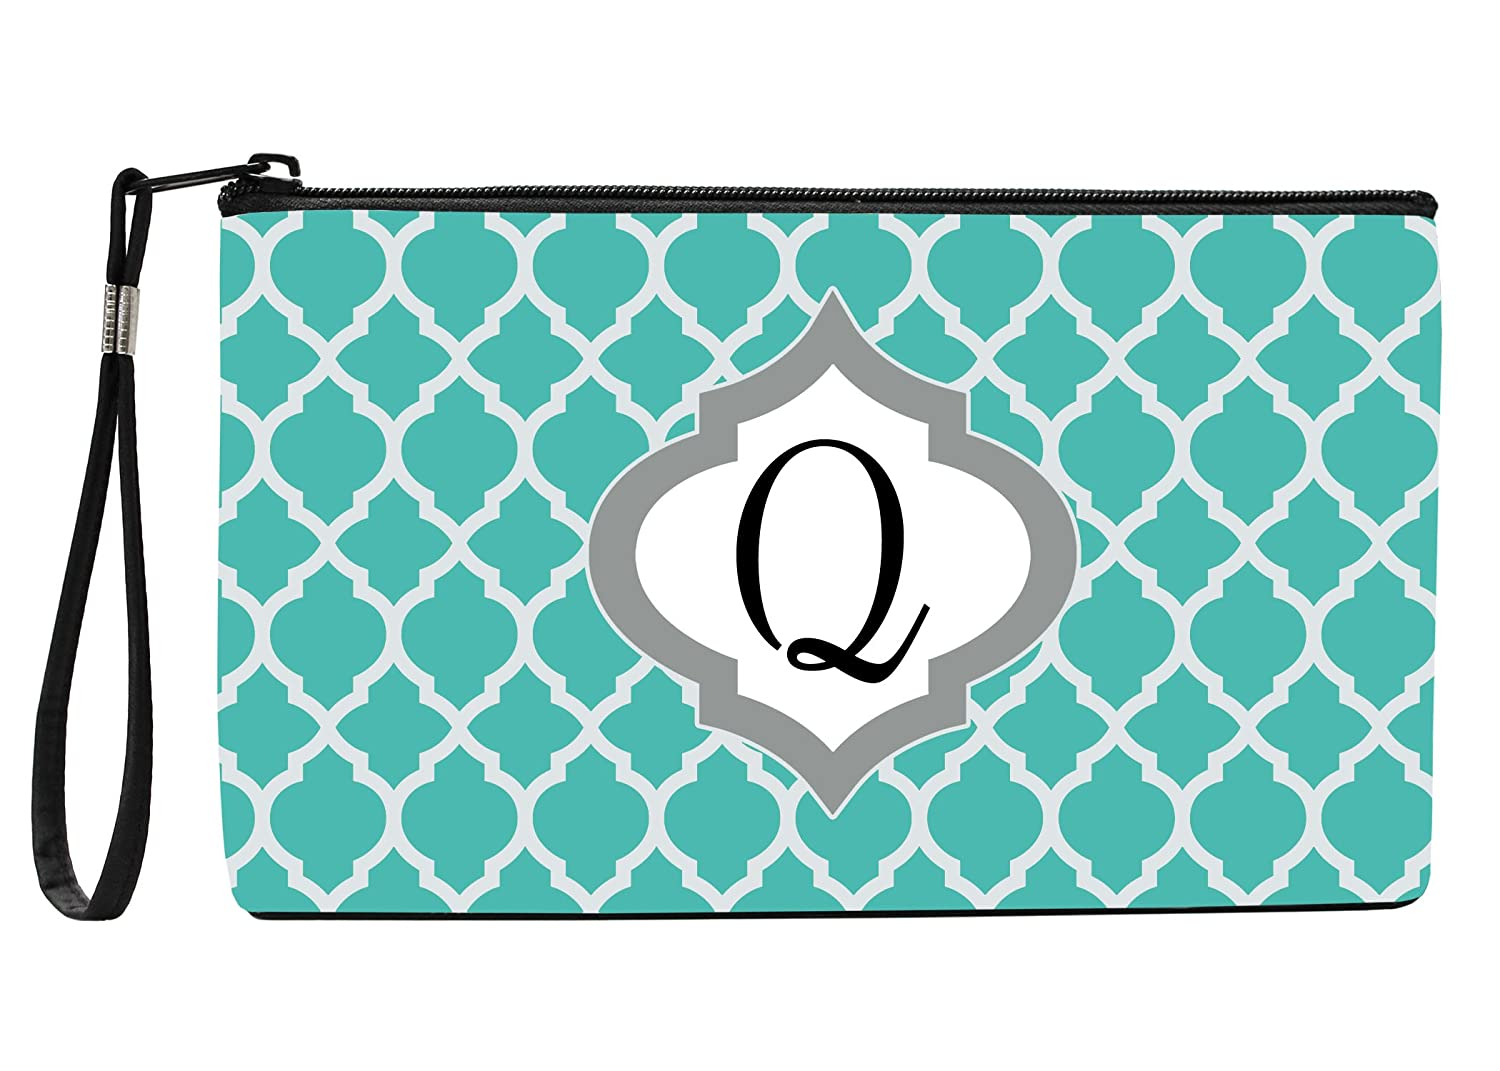 Snaptotes Trendy Teal Moroccan Monogram Design Wristlet Clutch Purse